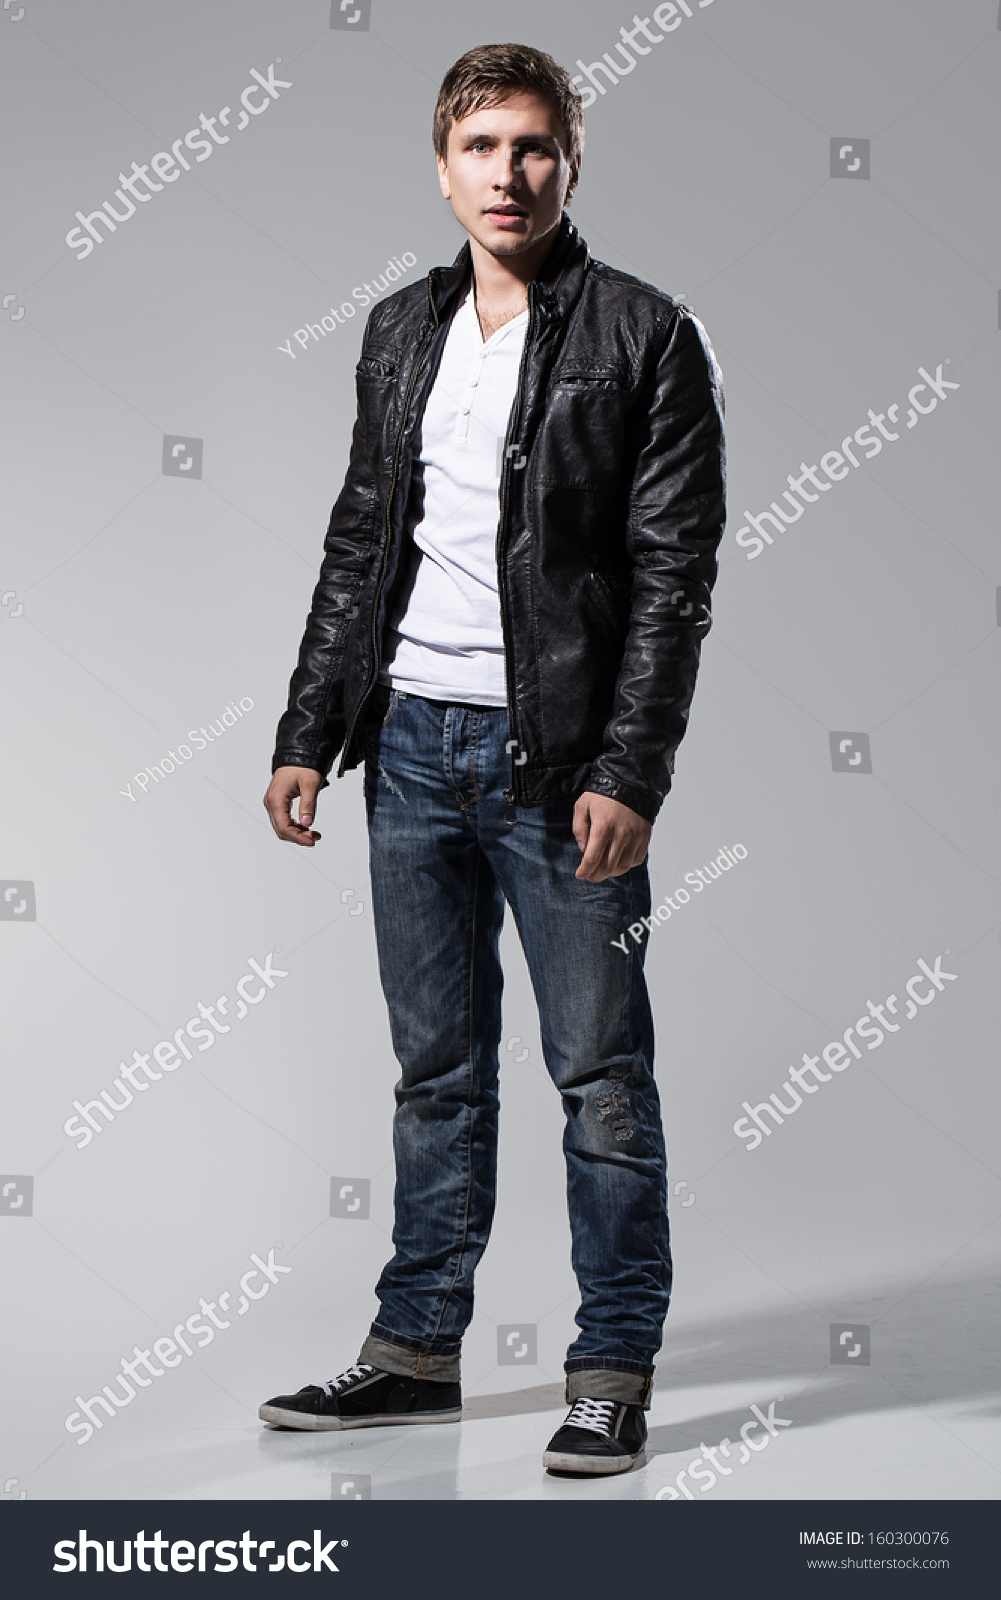 Handsome Man Leather Jacket Jeans White Stock Photo 160300076